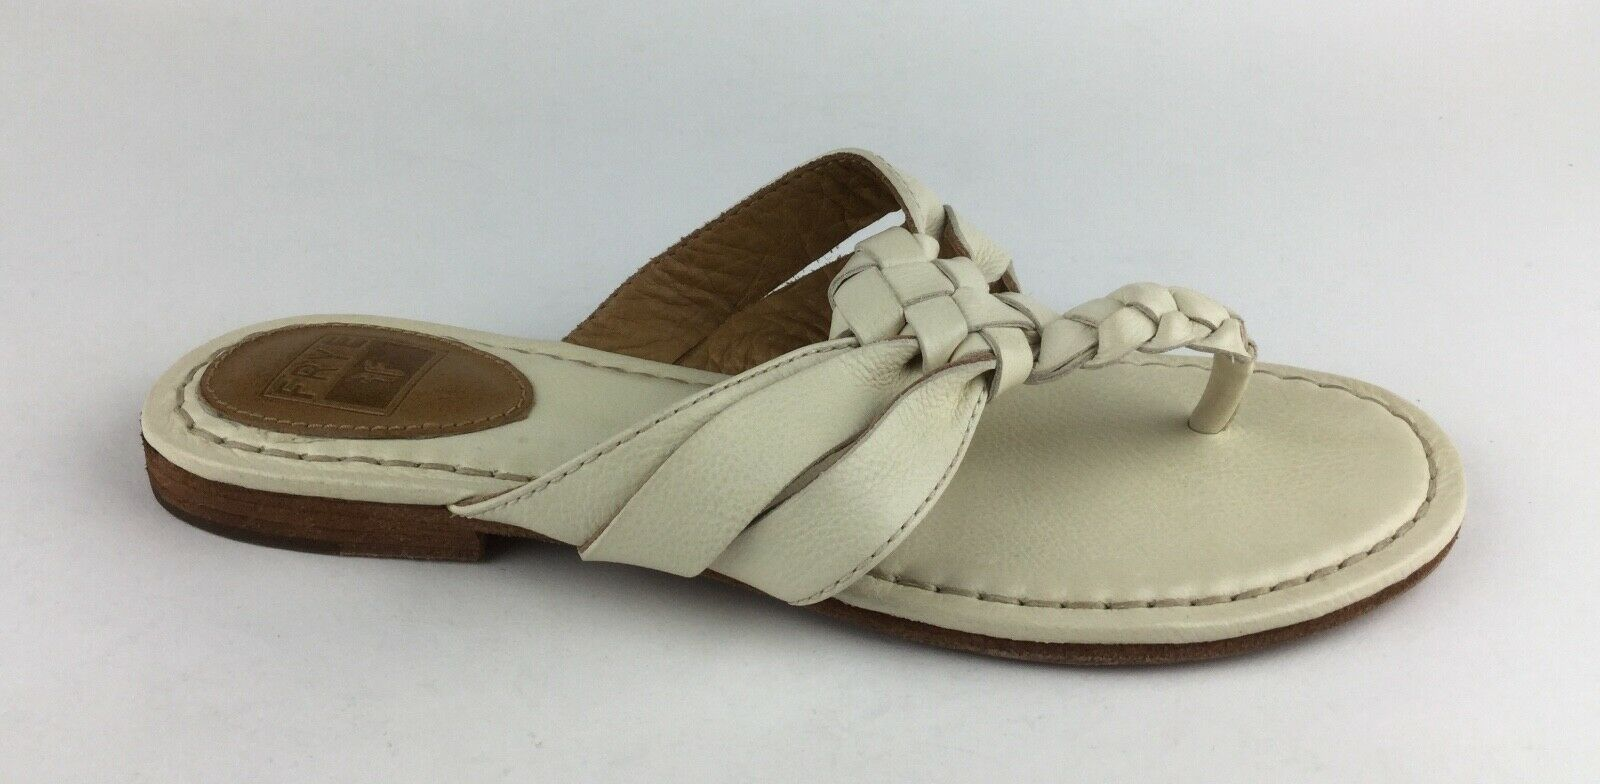 Frye Twisted Womens Ivory Leather Flip Flops Sandals Sz US 6